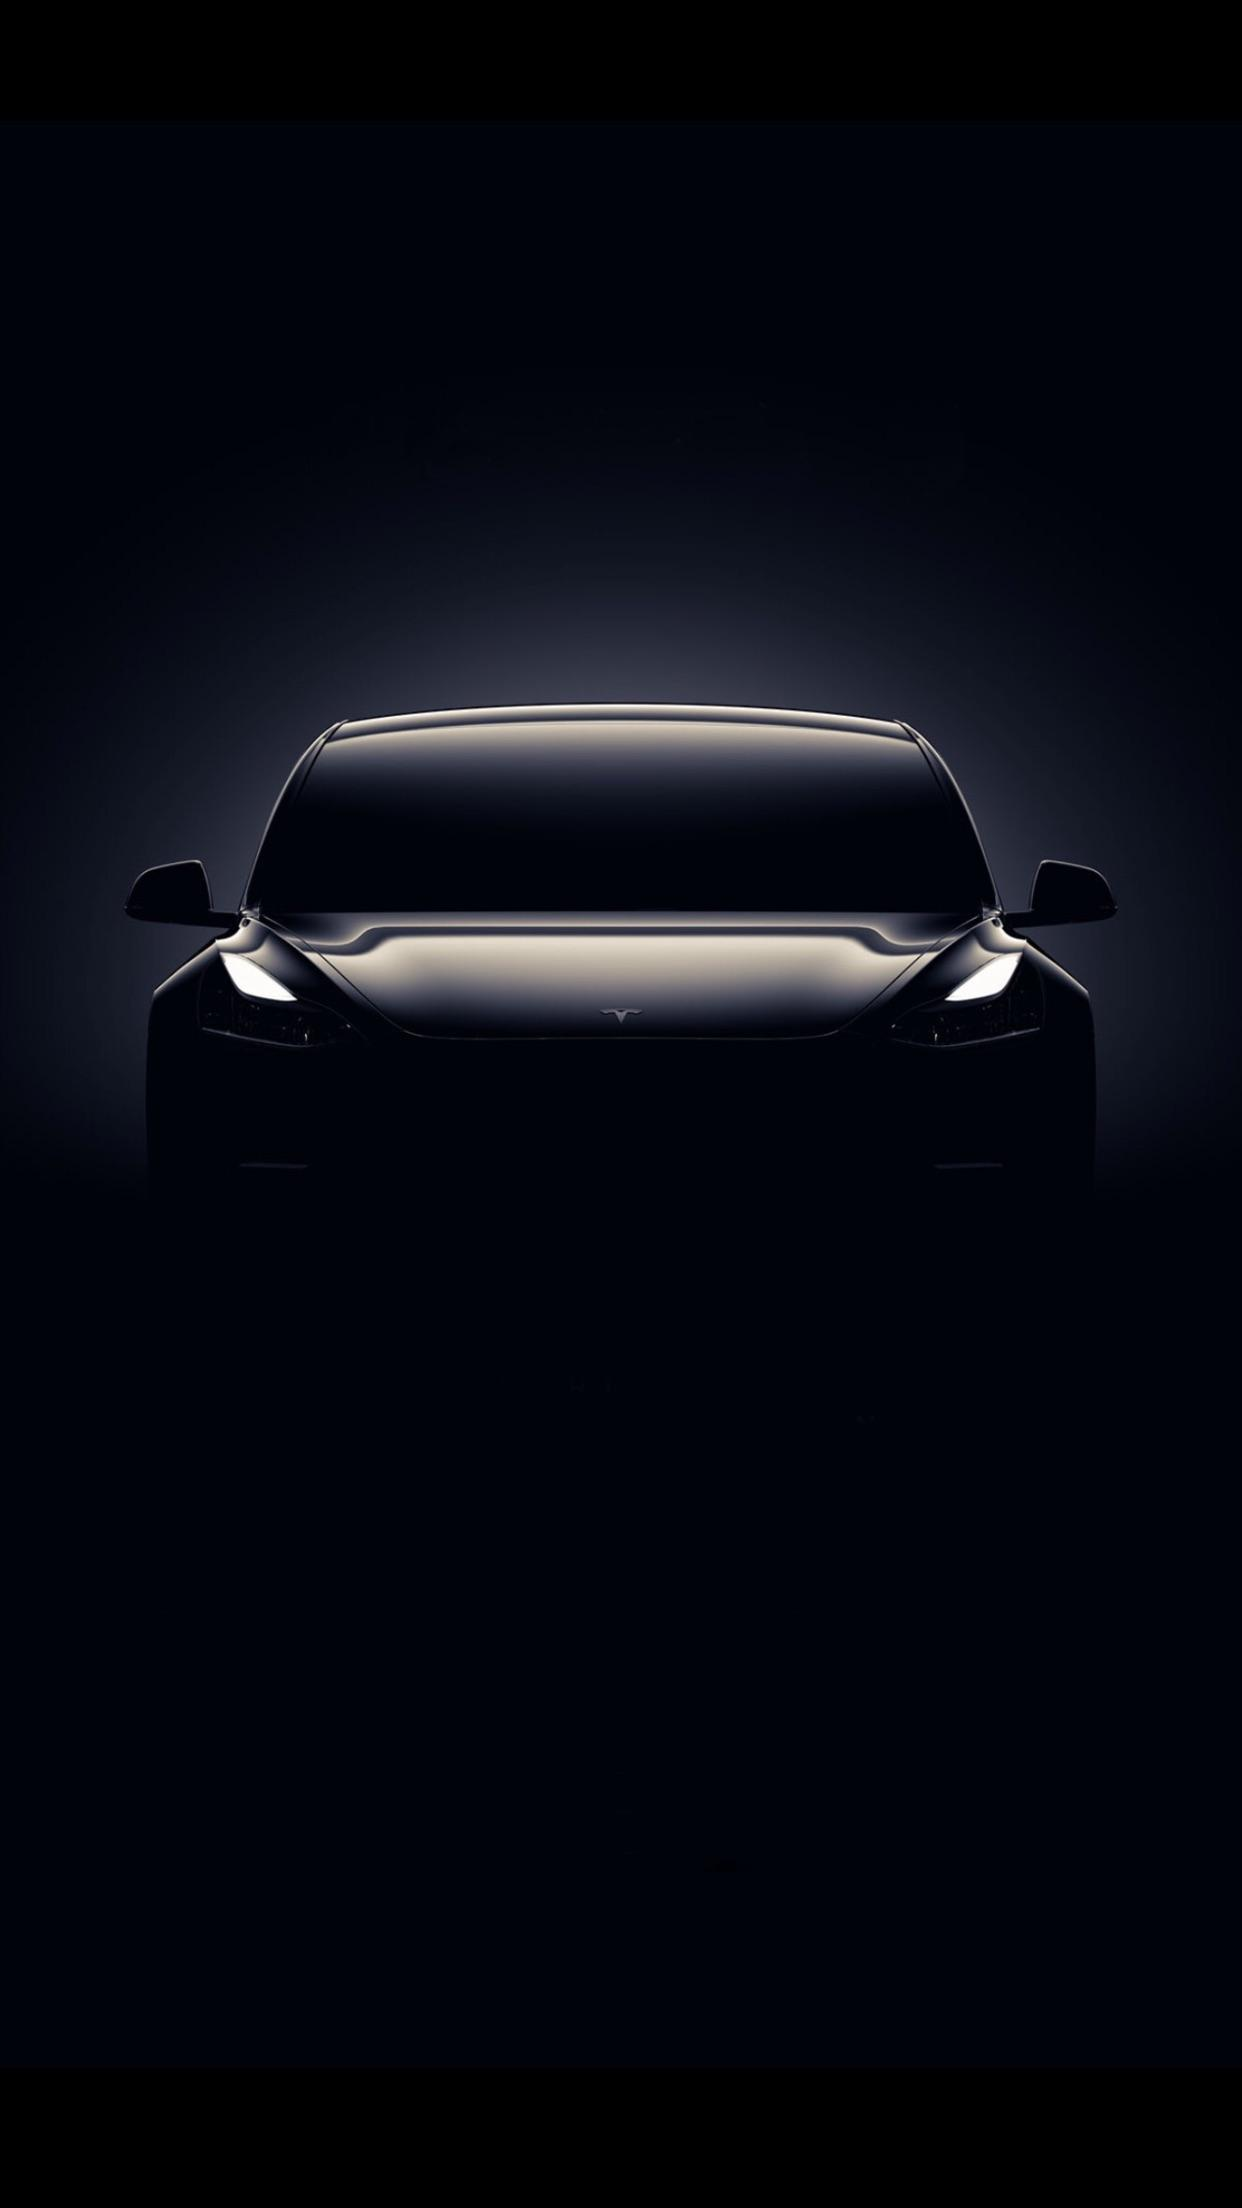 Tesla Phone Wallpapers - Wallpaper Cave